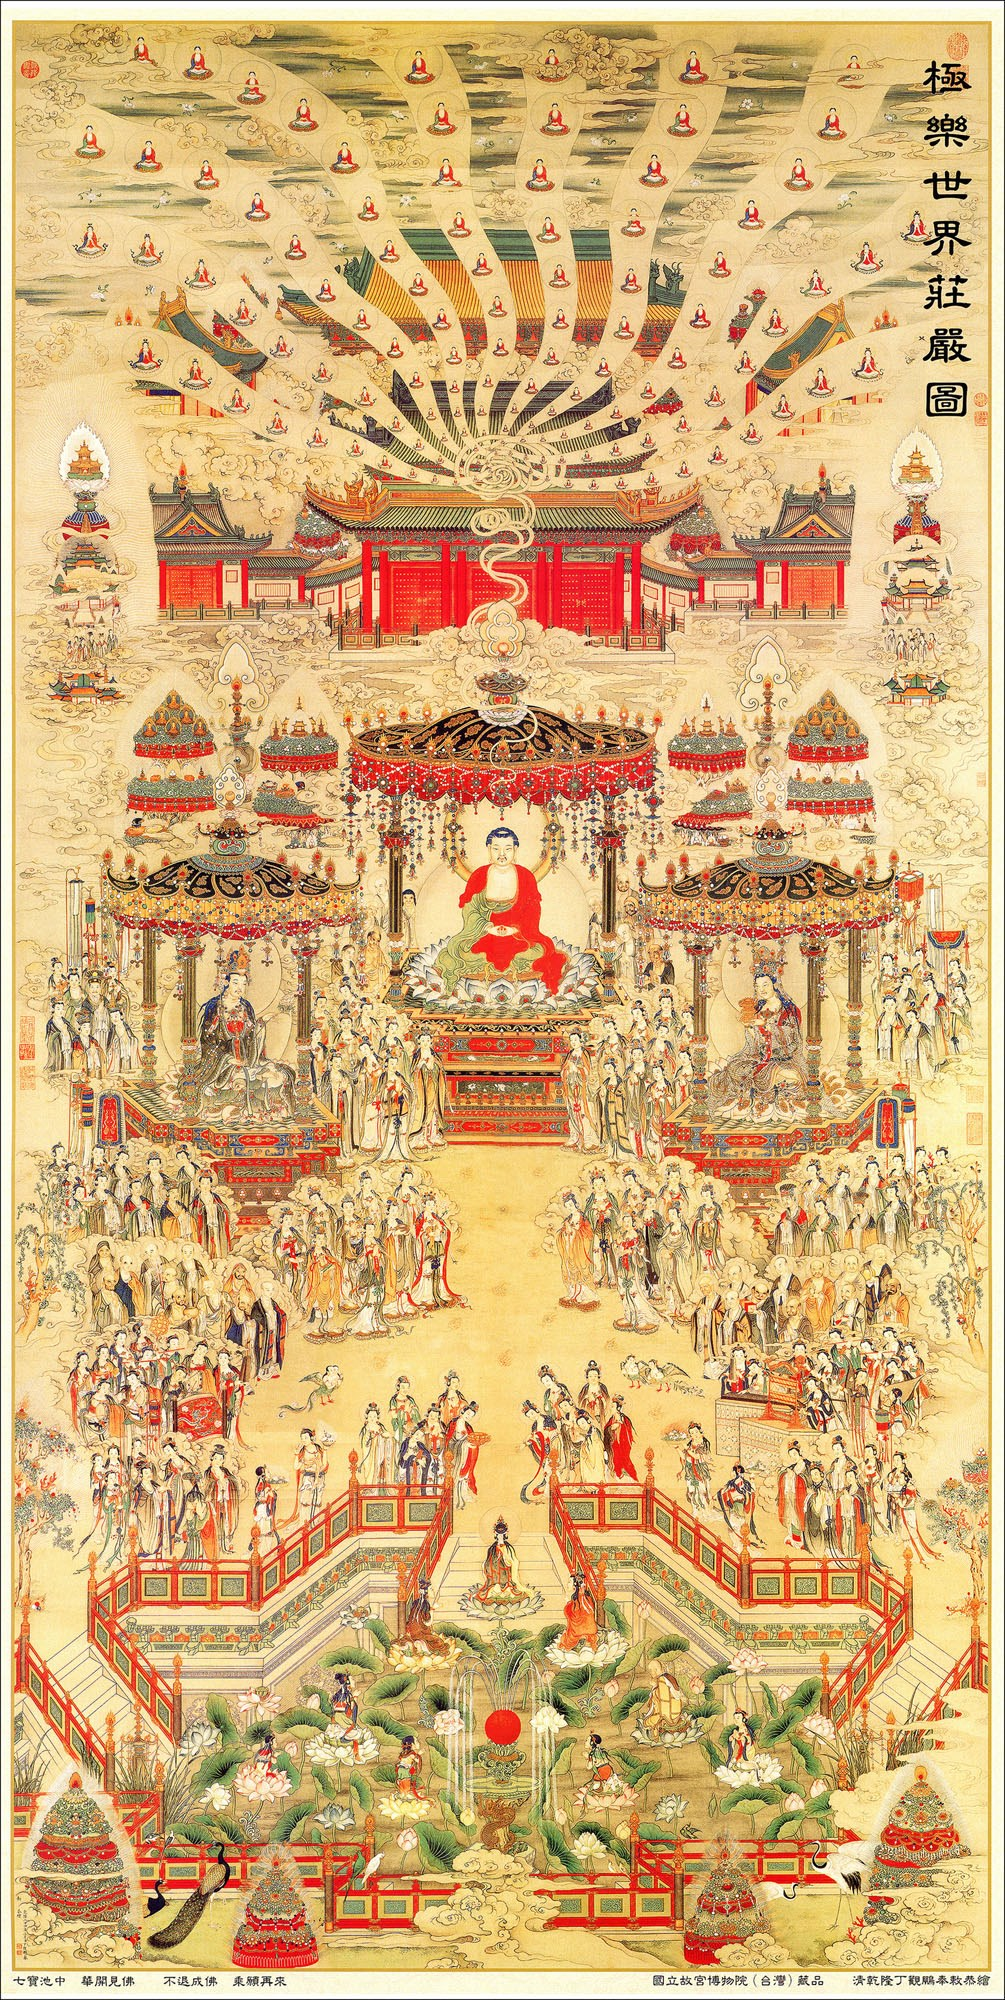 The solemn Buddha portrait of the world of kinship is a silk hanging painting